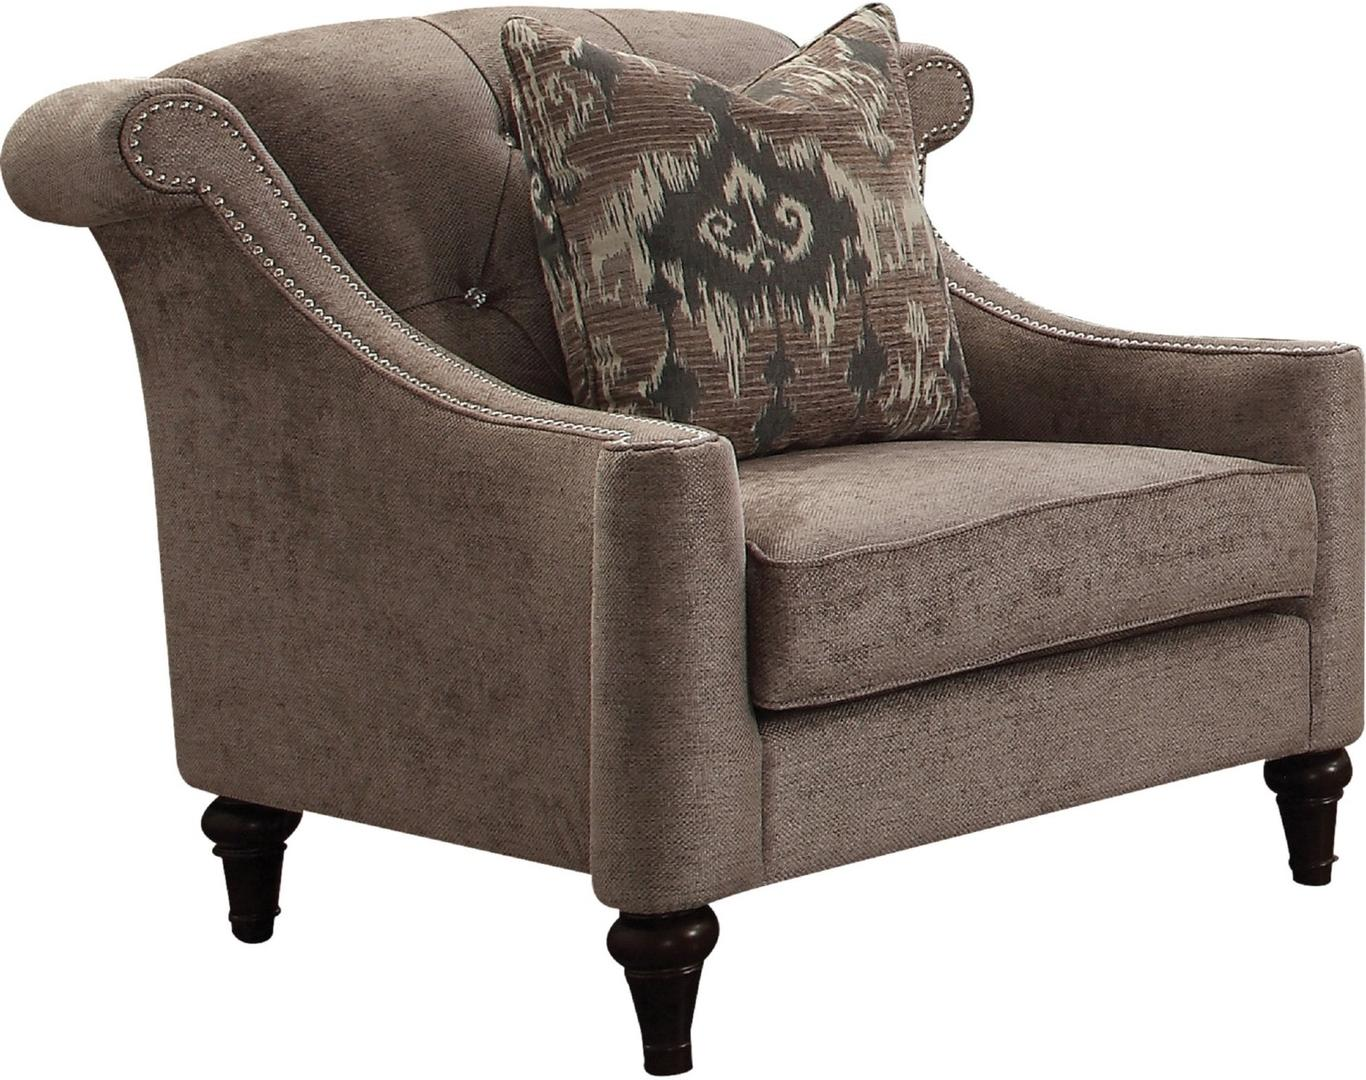 Acme 52867 Colten Gray Fabric Finish Vintage Chair